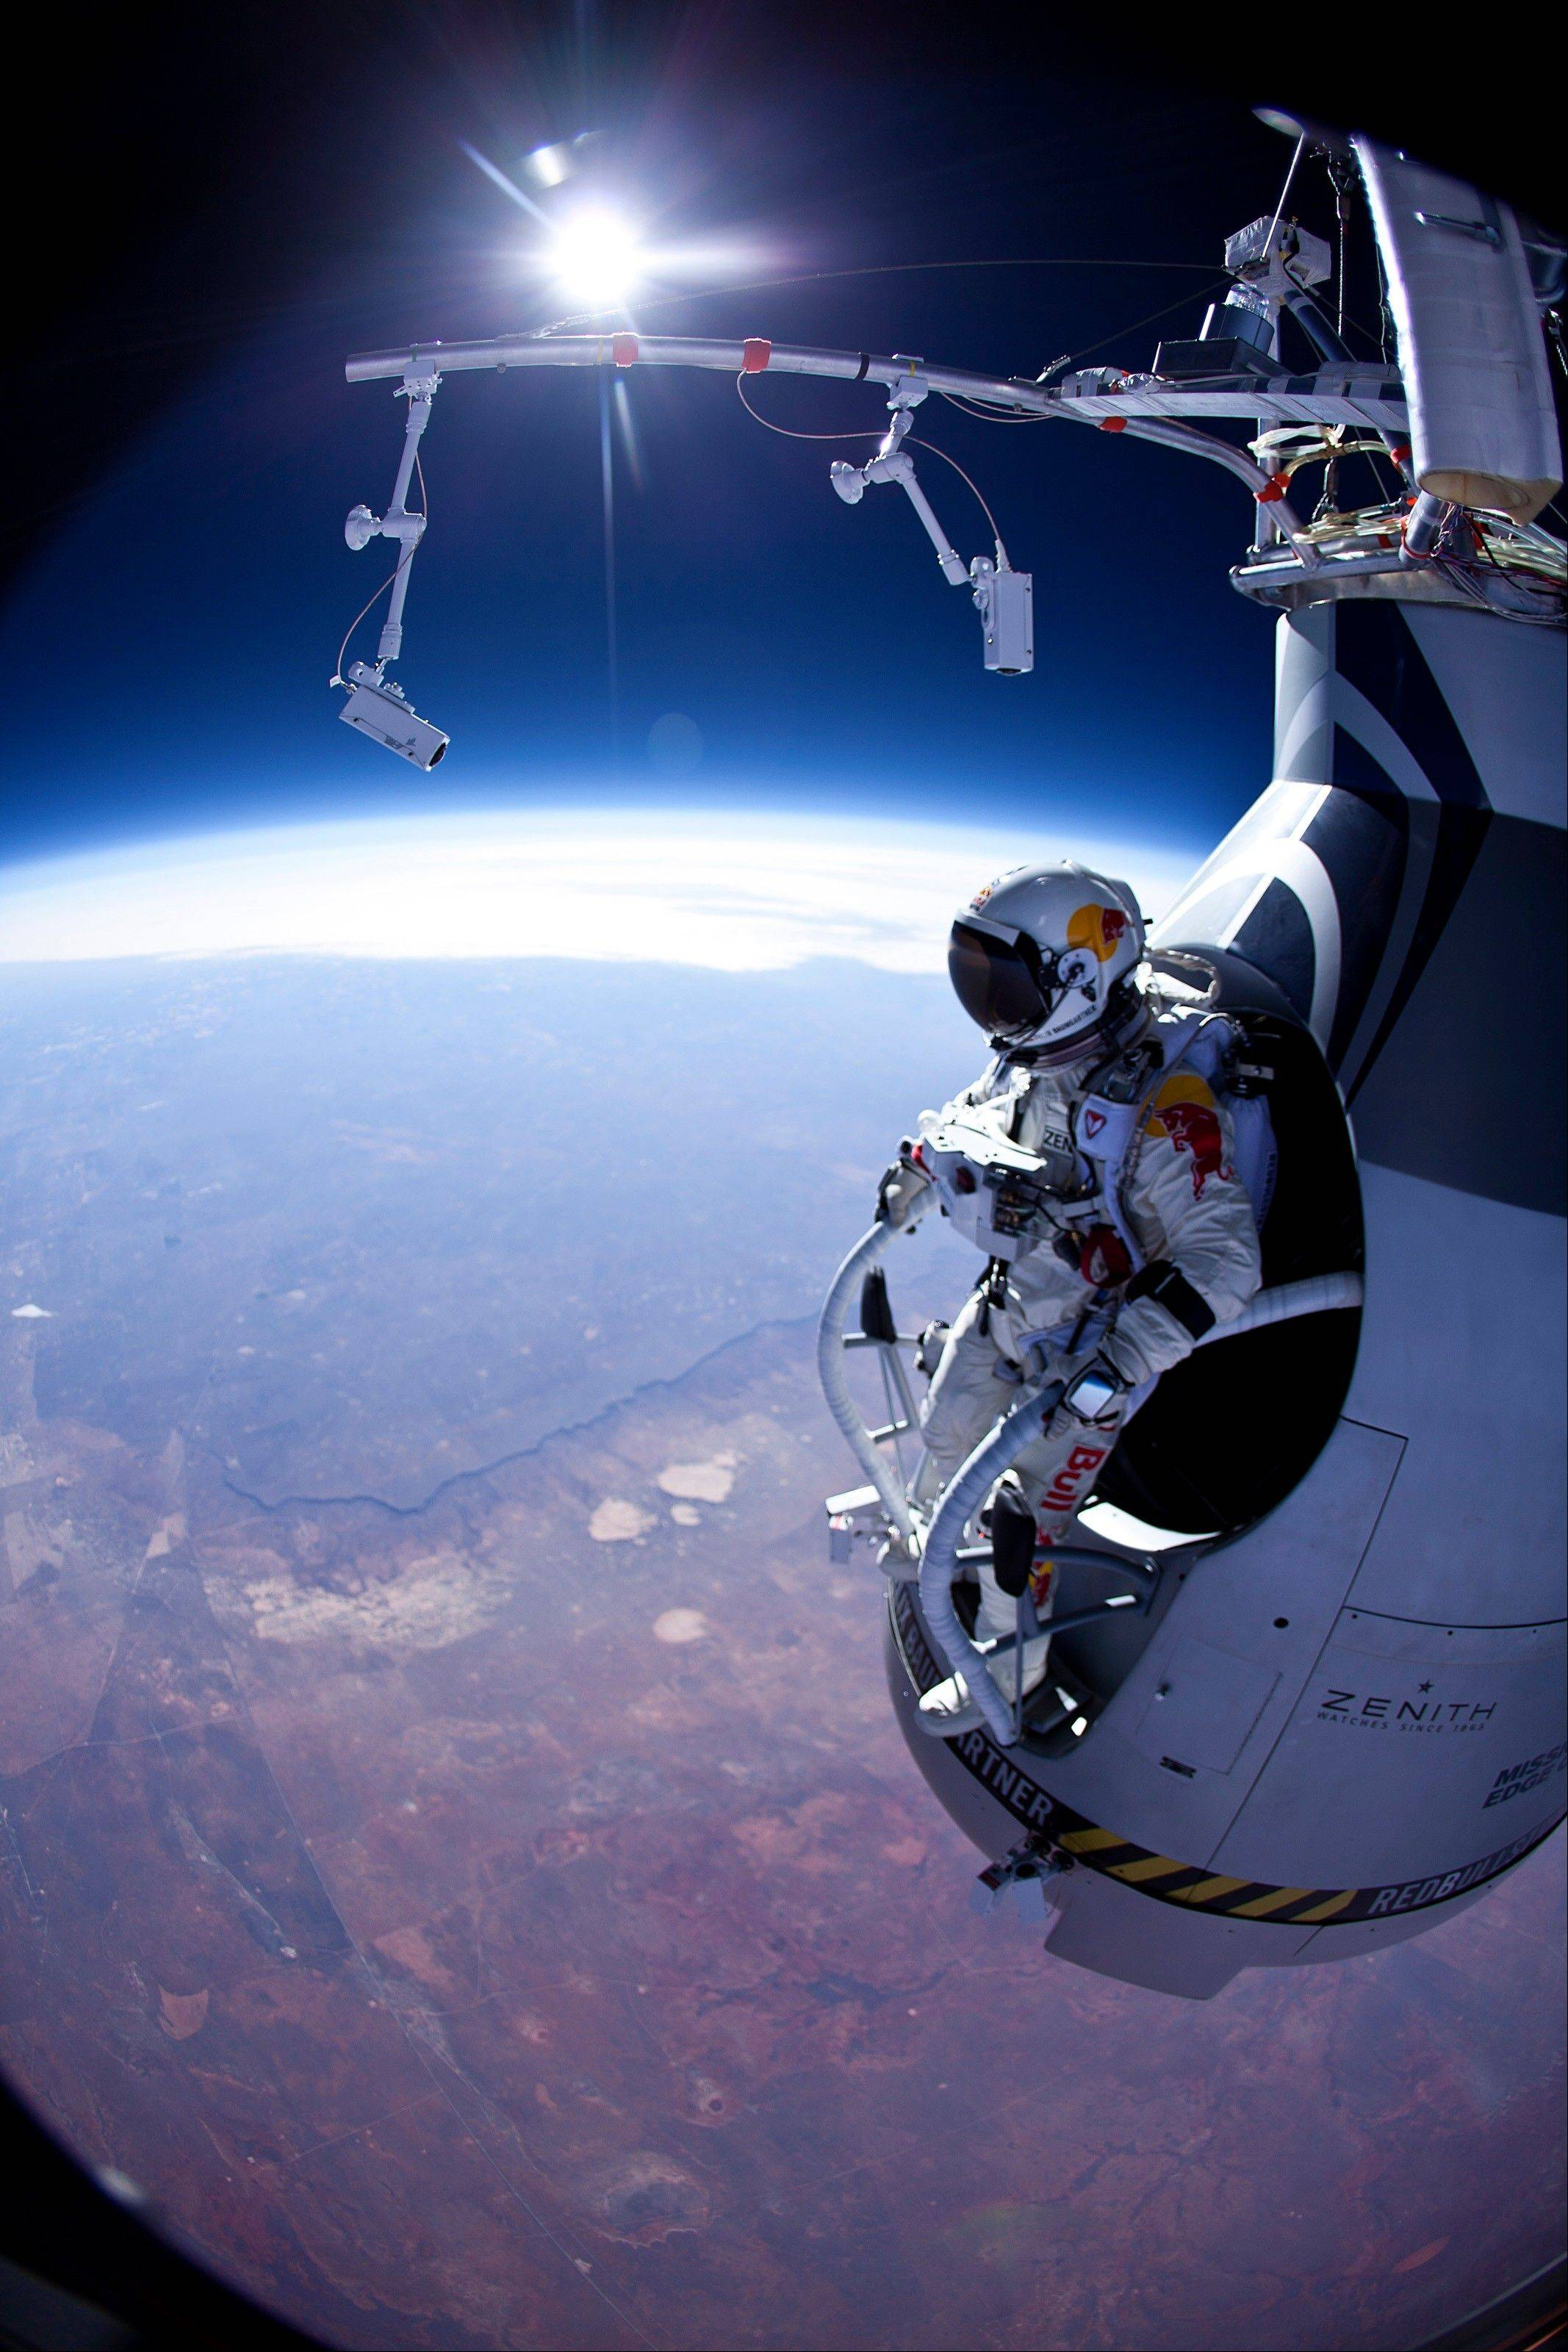 FILE - In this Thursday, March 15, 2012 photo provided by Red Bull Stratos, Felix Baumgartner prepares to jump during the first manned test flight for Red Bull Stratos over Roswell, N.M. On Wednesday, July 25, 2012, the 43-year-old Austrian plunged to Earth from an altitude of more than 18 miles landing safely near Roswell, N.M. It�s was second stratospheric leap for �Fearless Felix.� He�s aiming for a record-breaking jump from 125,000 feet, or 23 miles, in another month. He hopes to go supersonic, breaking the speed of sound with just his body.